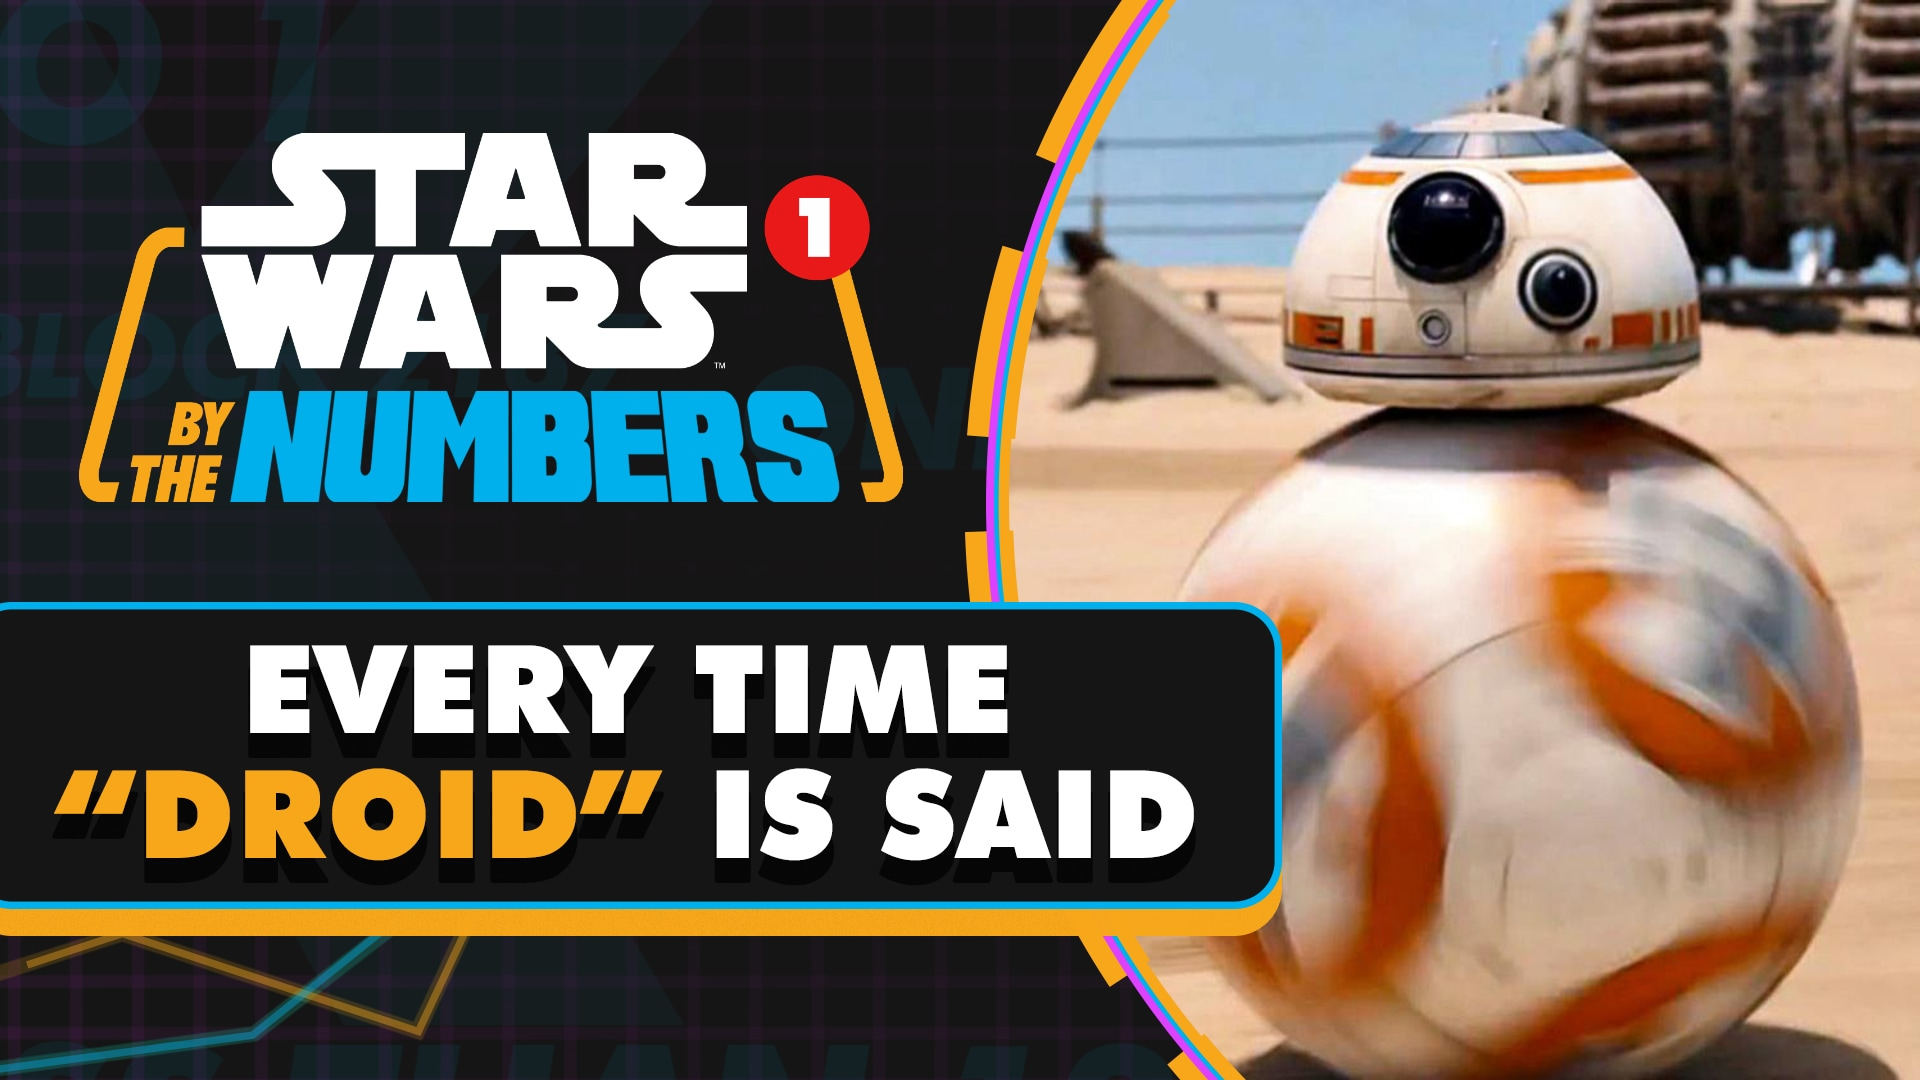 Every Time Droid is Said in Star Wars Movies | Star Wars By the Numbers